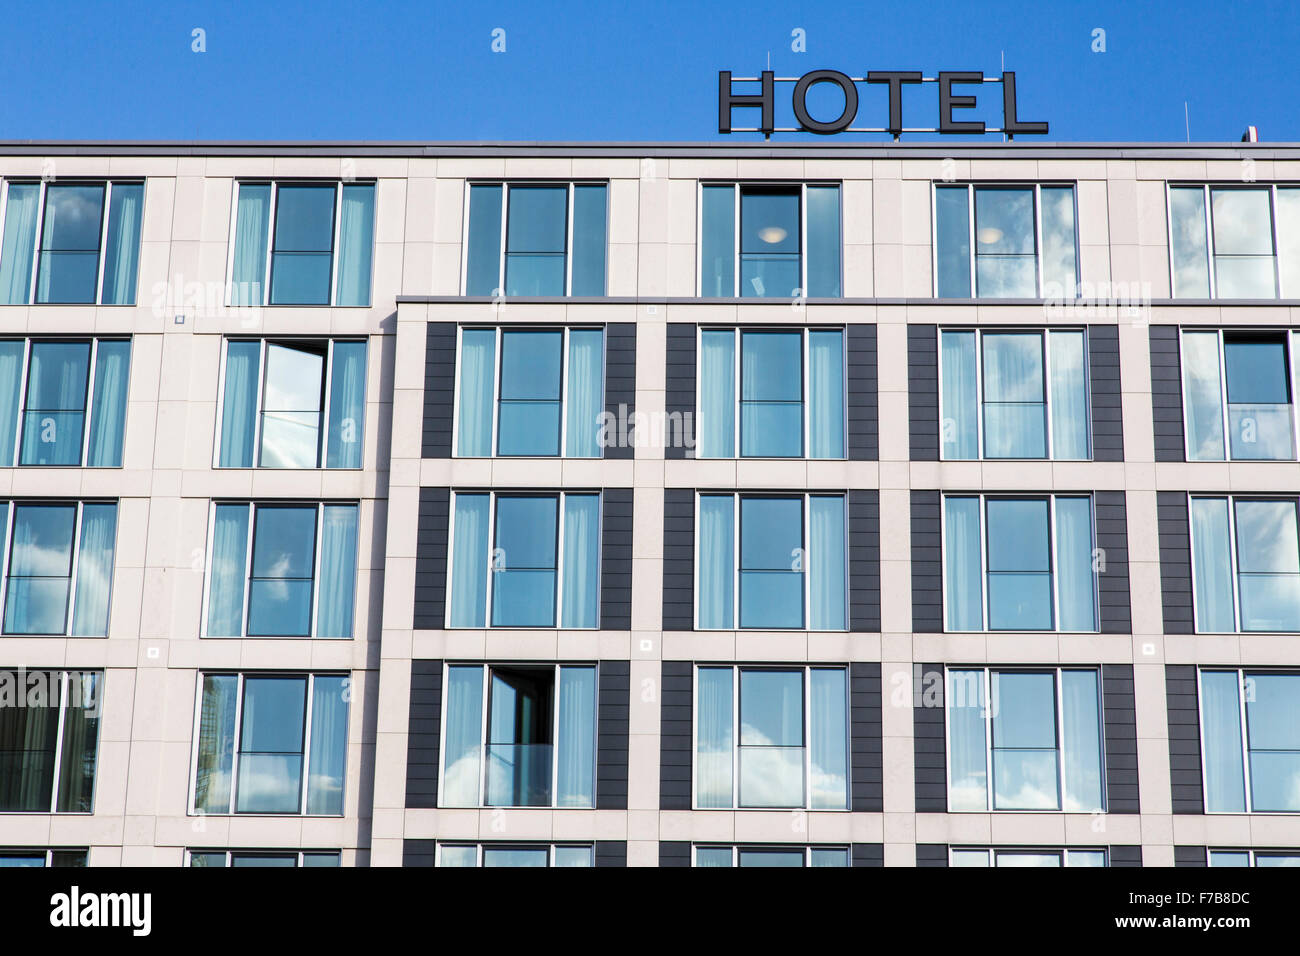 Facade of a modern hotel stock photo 90602552 alamy for Hotel design facade